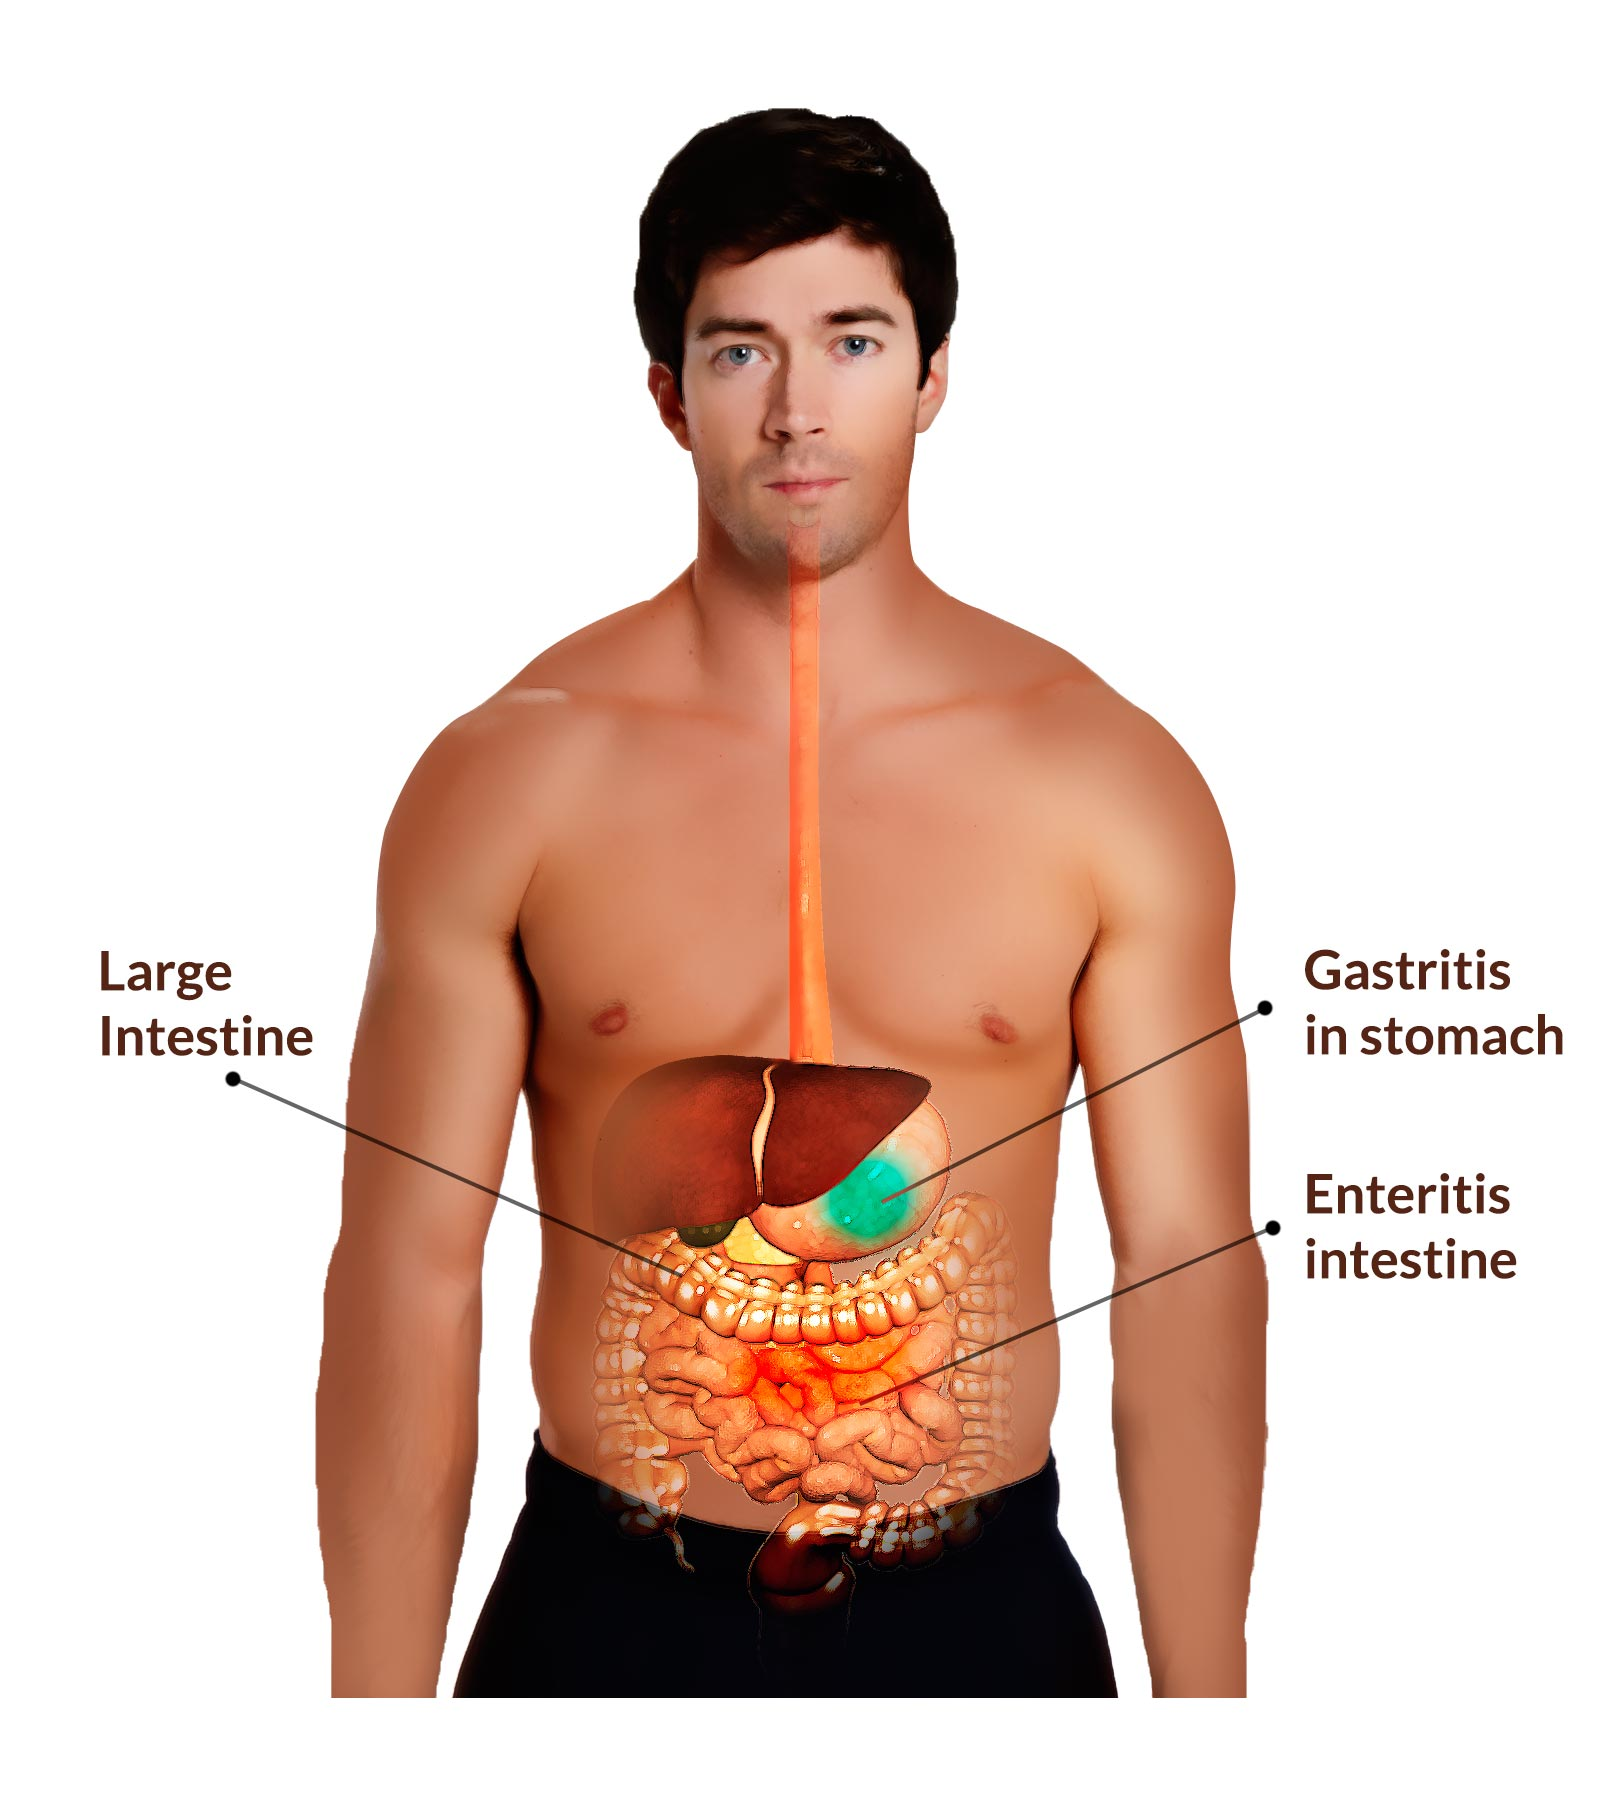 gastroenteritis: treatment, causes, symptoms, signs, risk factors, Human Body